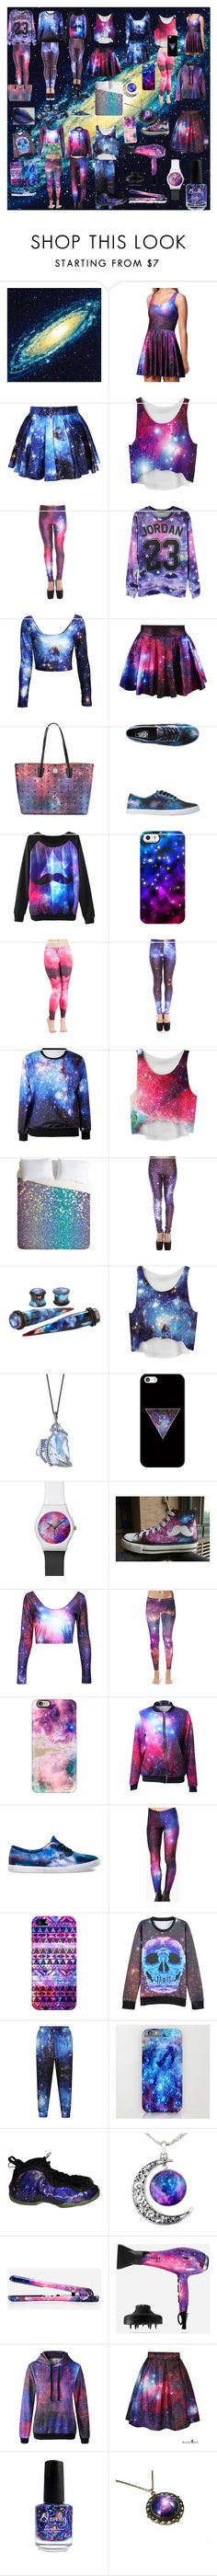 """To much galaxy <._.>"" by hollywoodactress ❤ liked on Polyvore featuring moda, Brewster Home Fashions, MCM, Vans, Uncommon, Casetify, HVBAO, Cosimia, NIKE y Eva NYC"